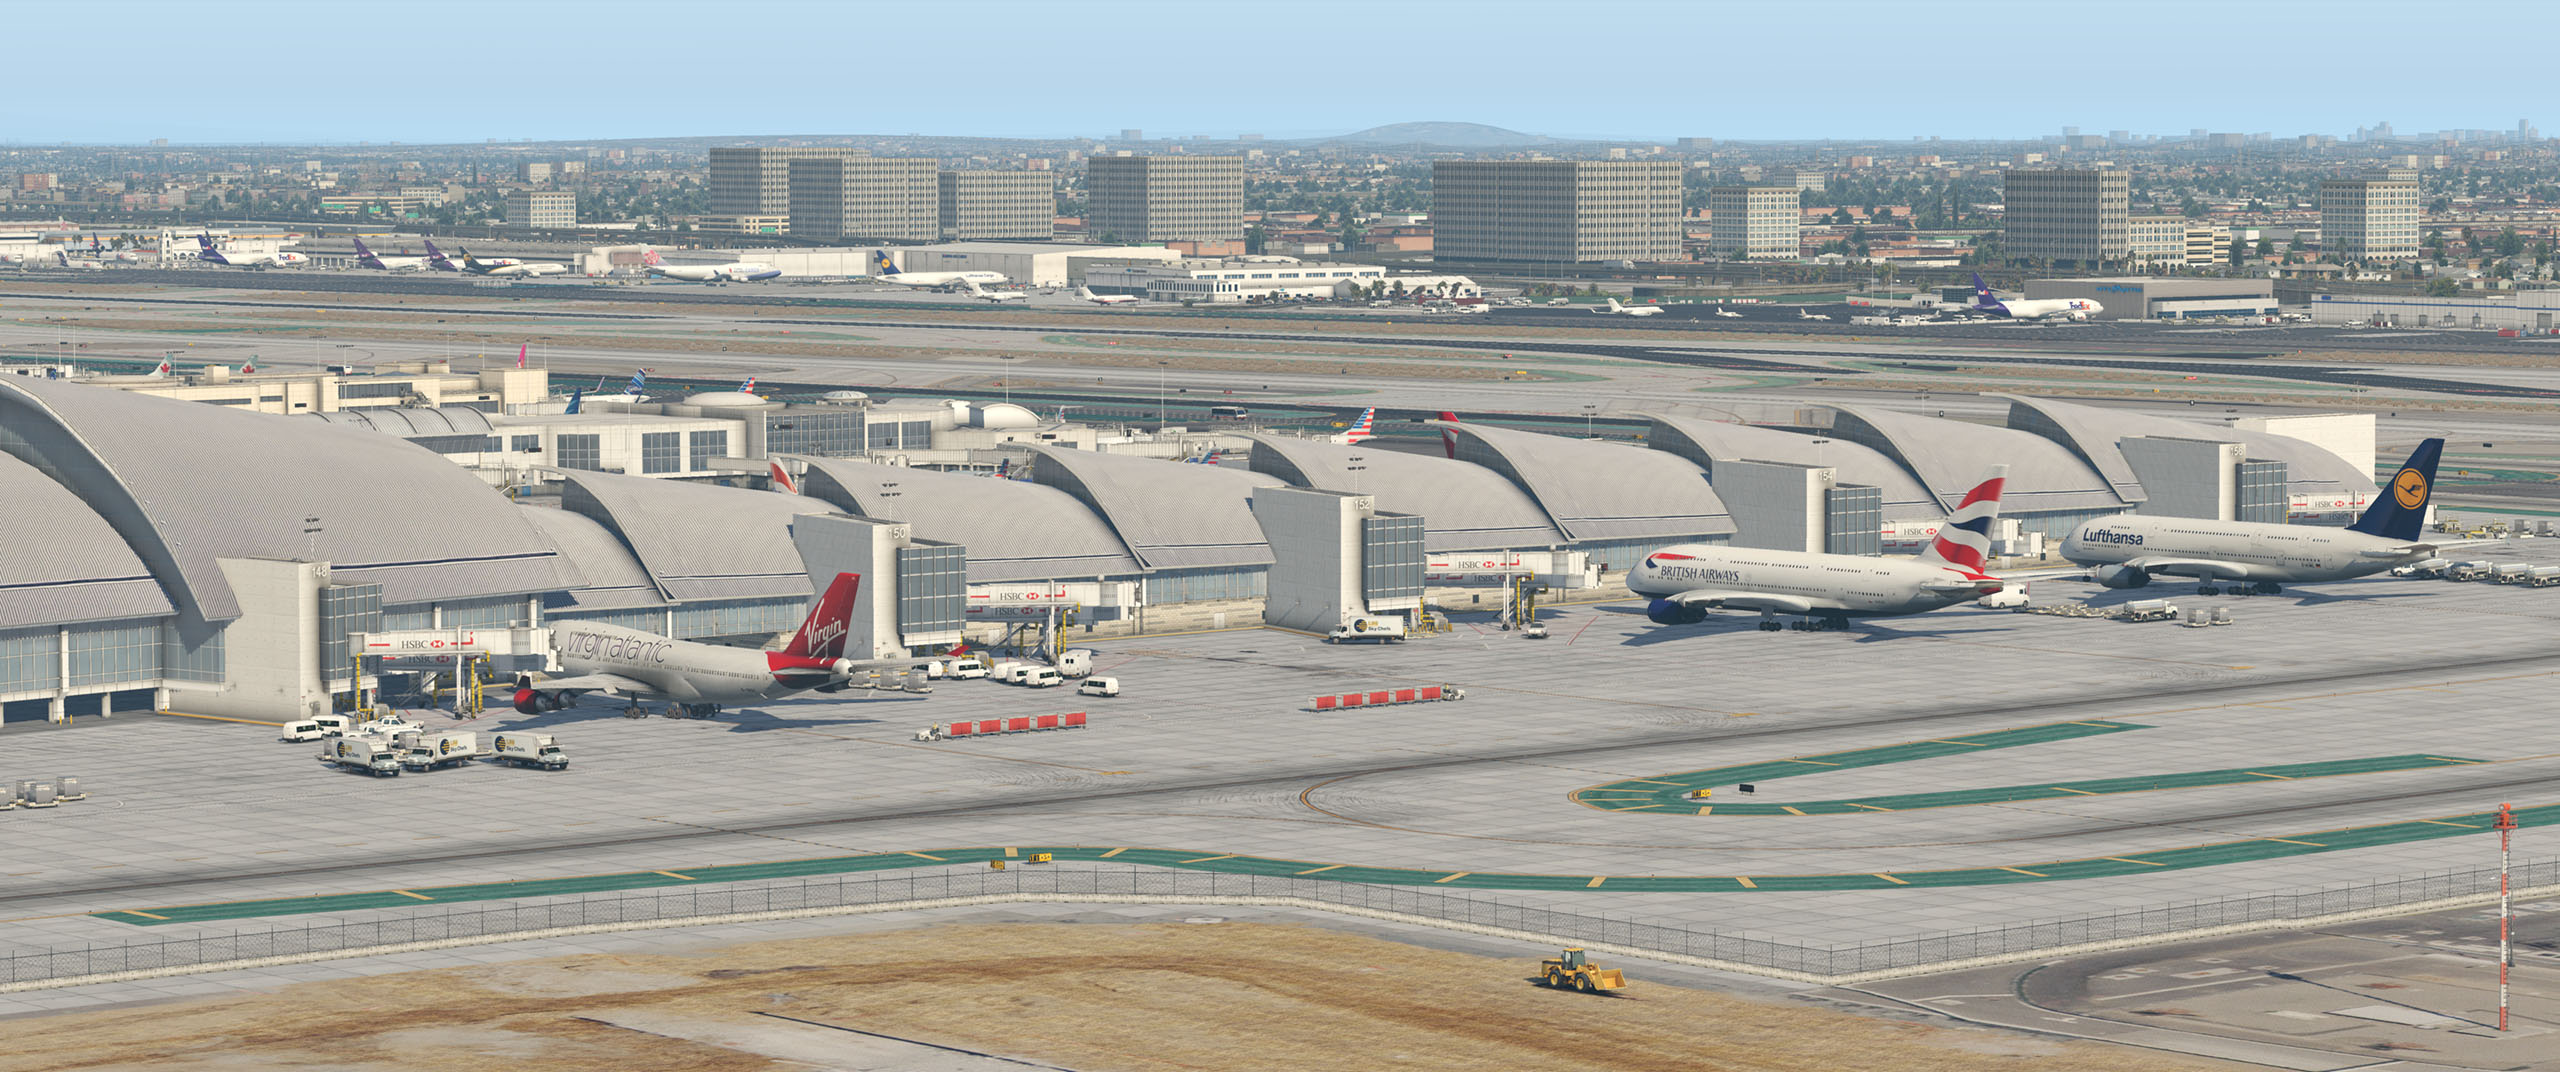 SHORTFINAL DESIGN - LOS ANGELES AIRPORT HD KLAX X-PLANE